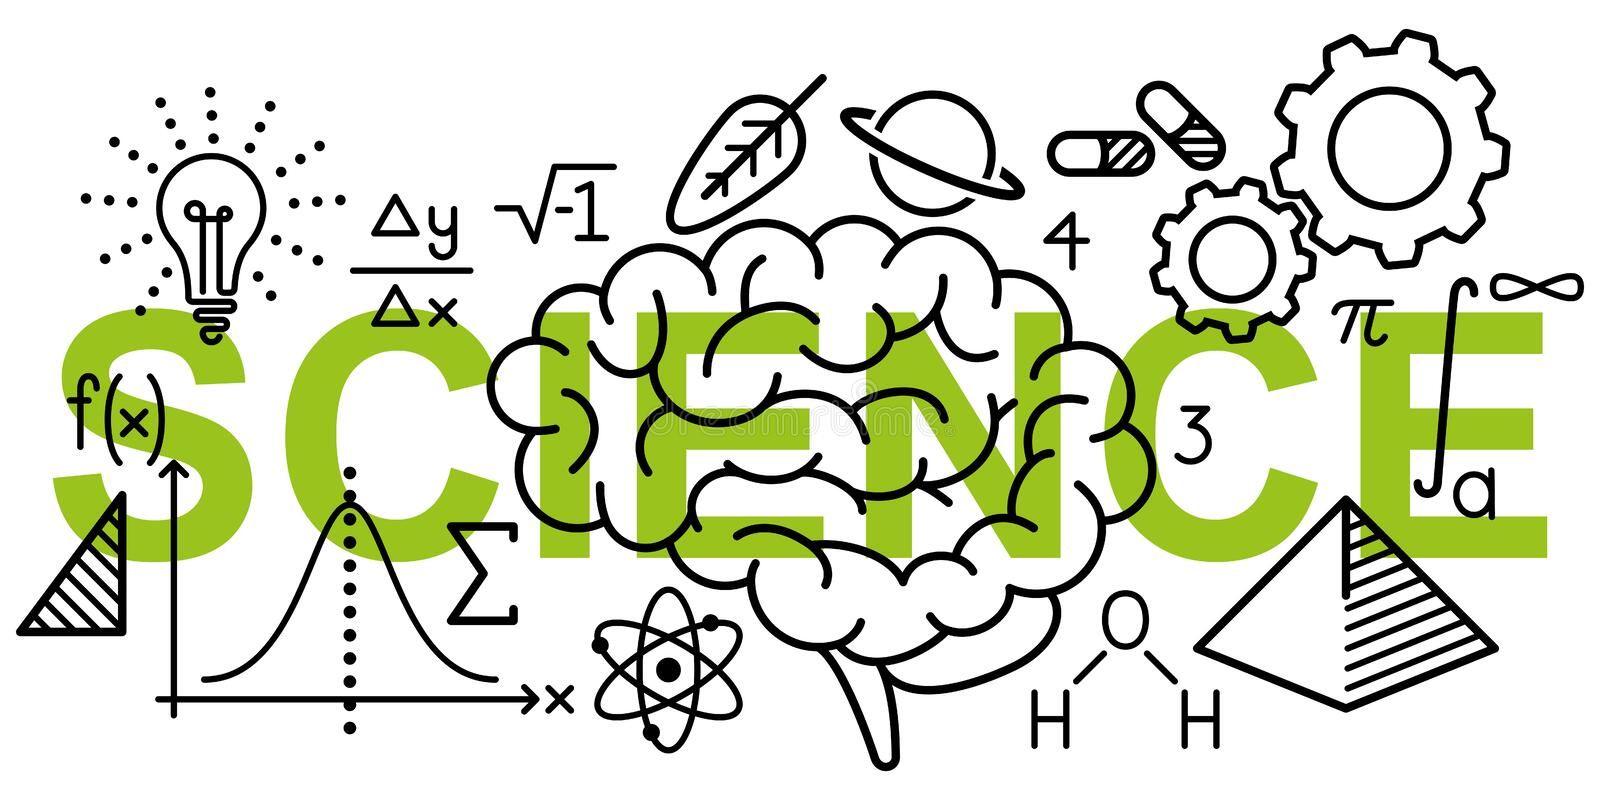 Simple clean conceptional vector illustration of math and science related line icons on word SCIENCE stock illustration